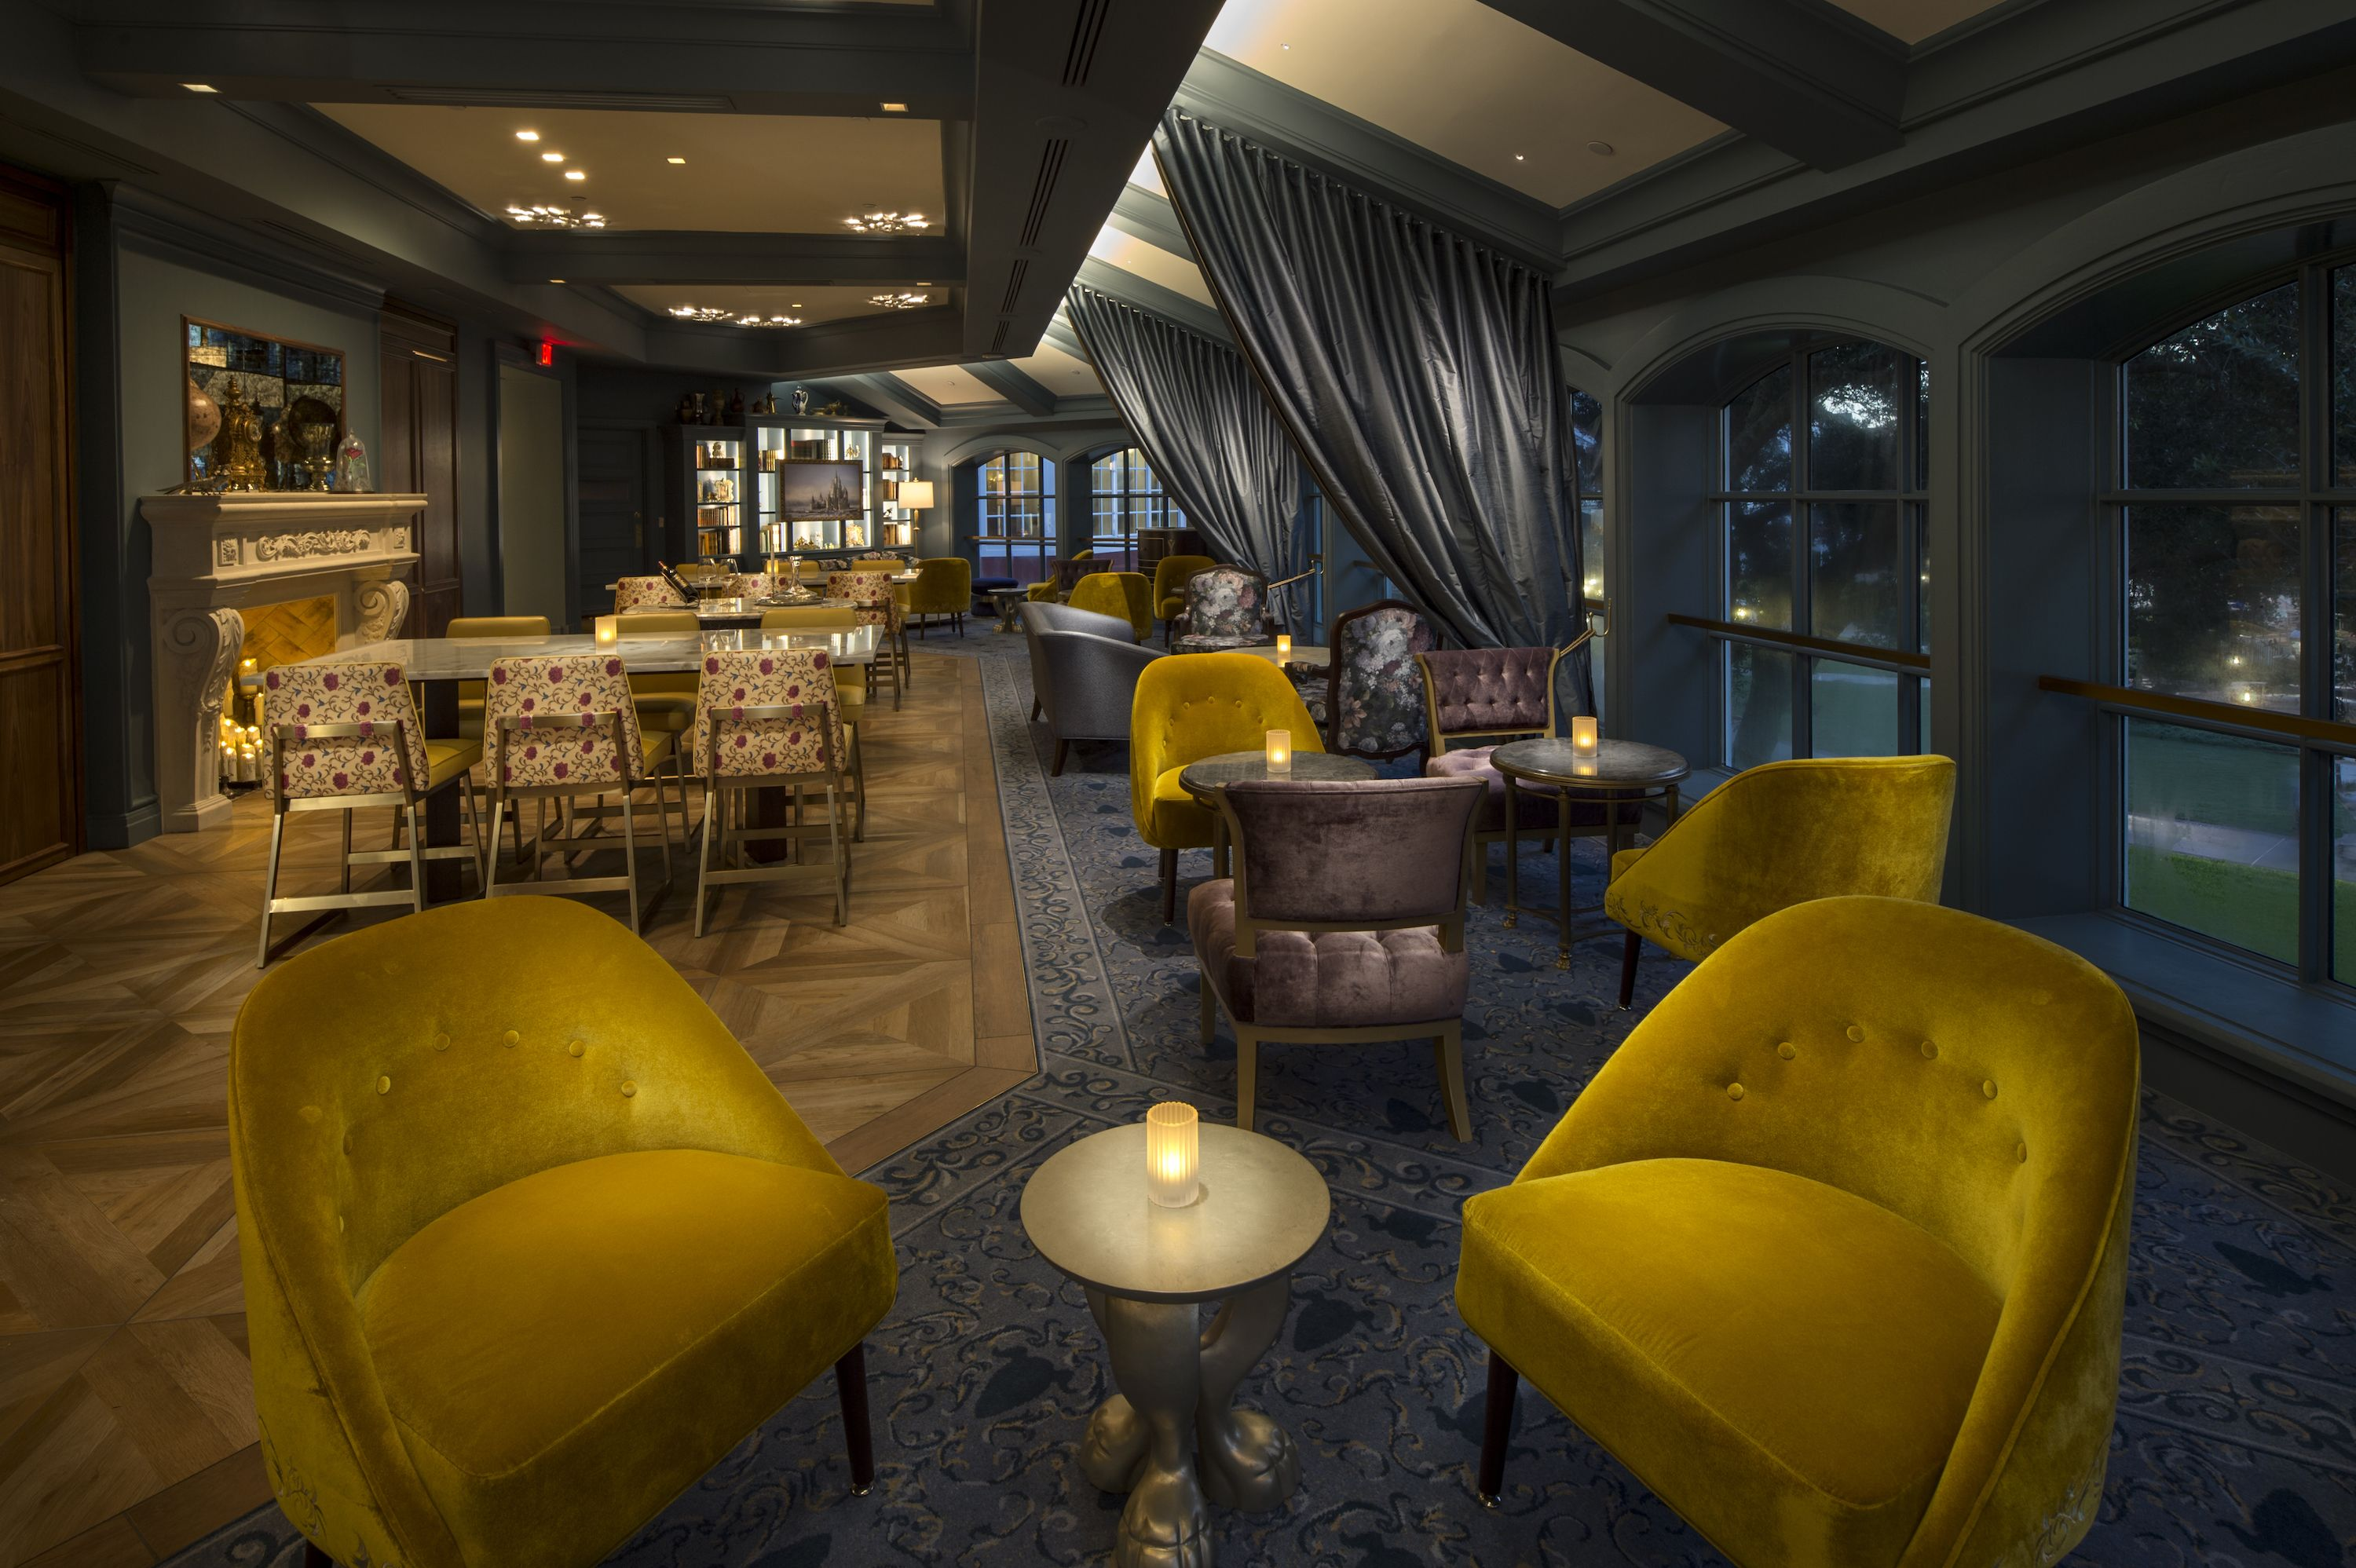 [UPDATE] Disney World Opened A 'Beauty & The Beast' Bar At The Grand Floridian Hotel